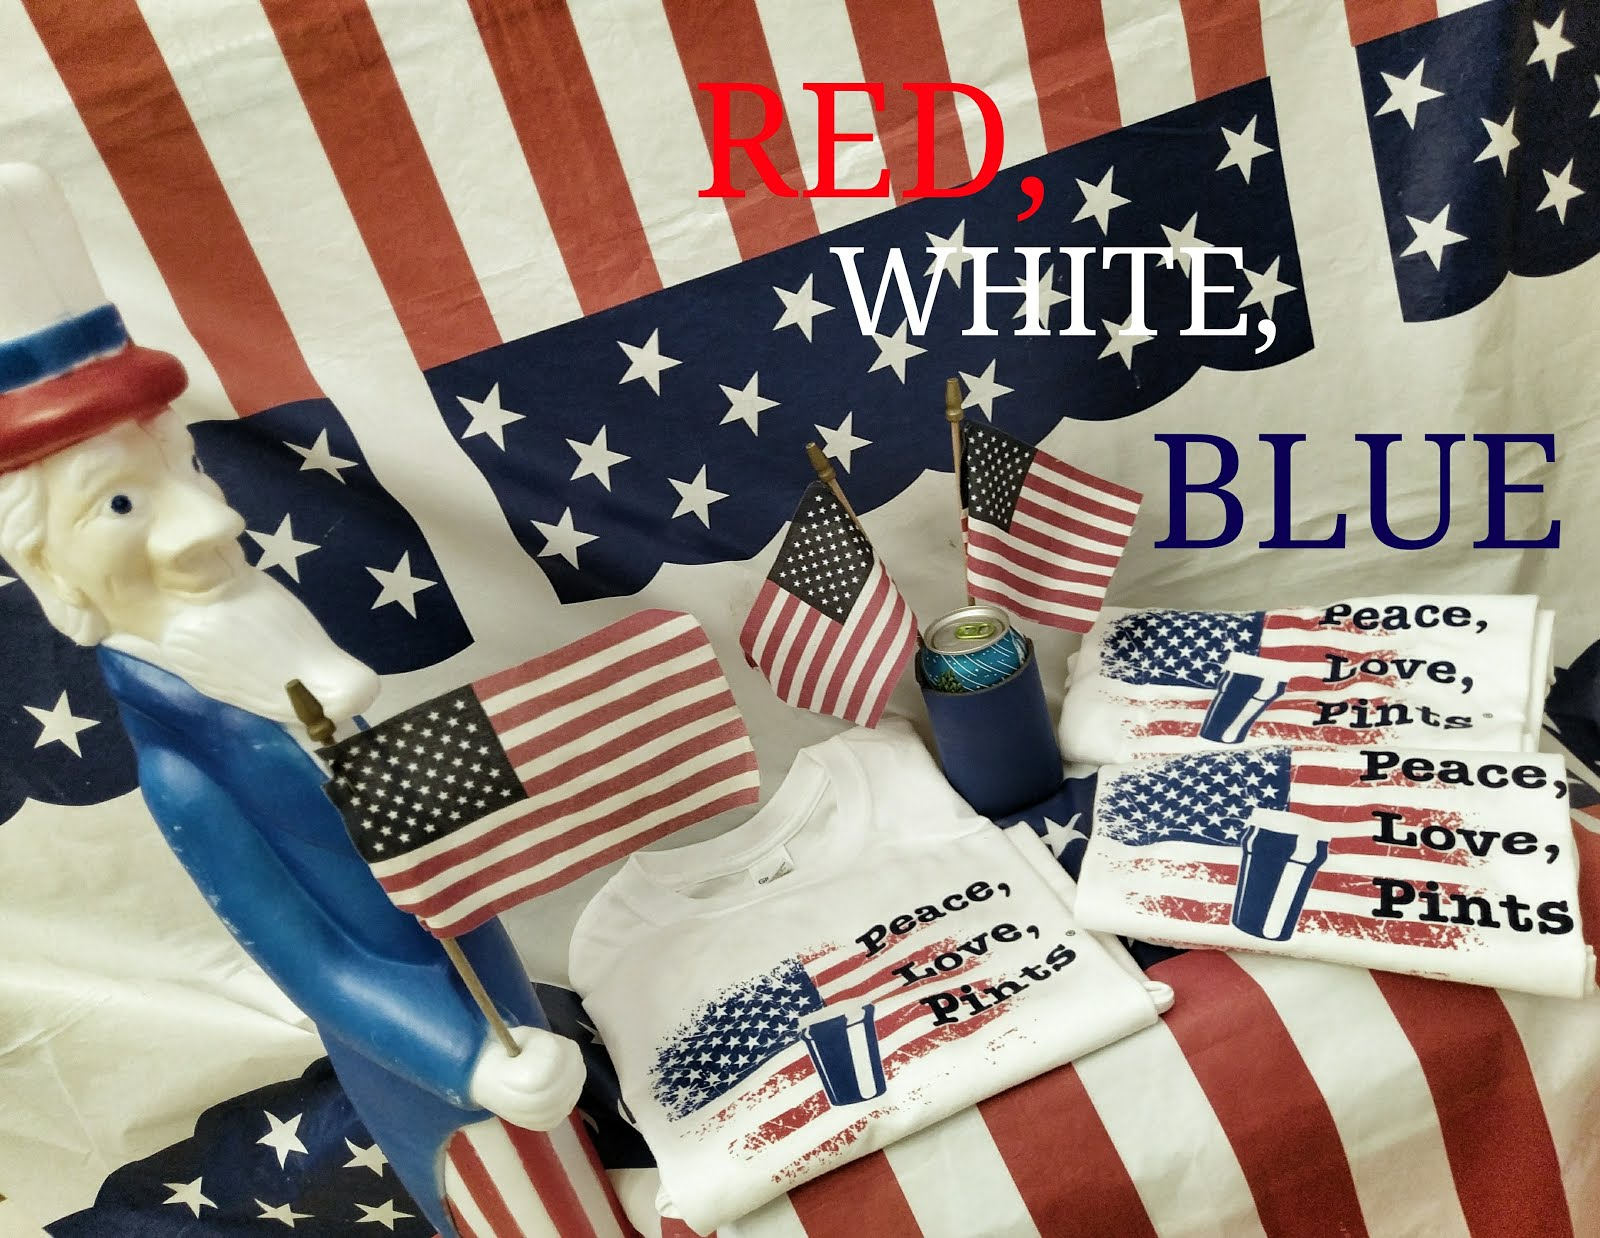 RED, WHITE & BLUE for Summer! did someone say beershirt?